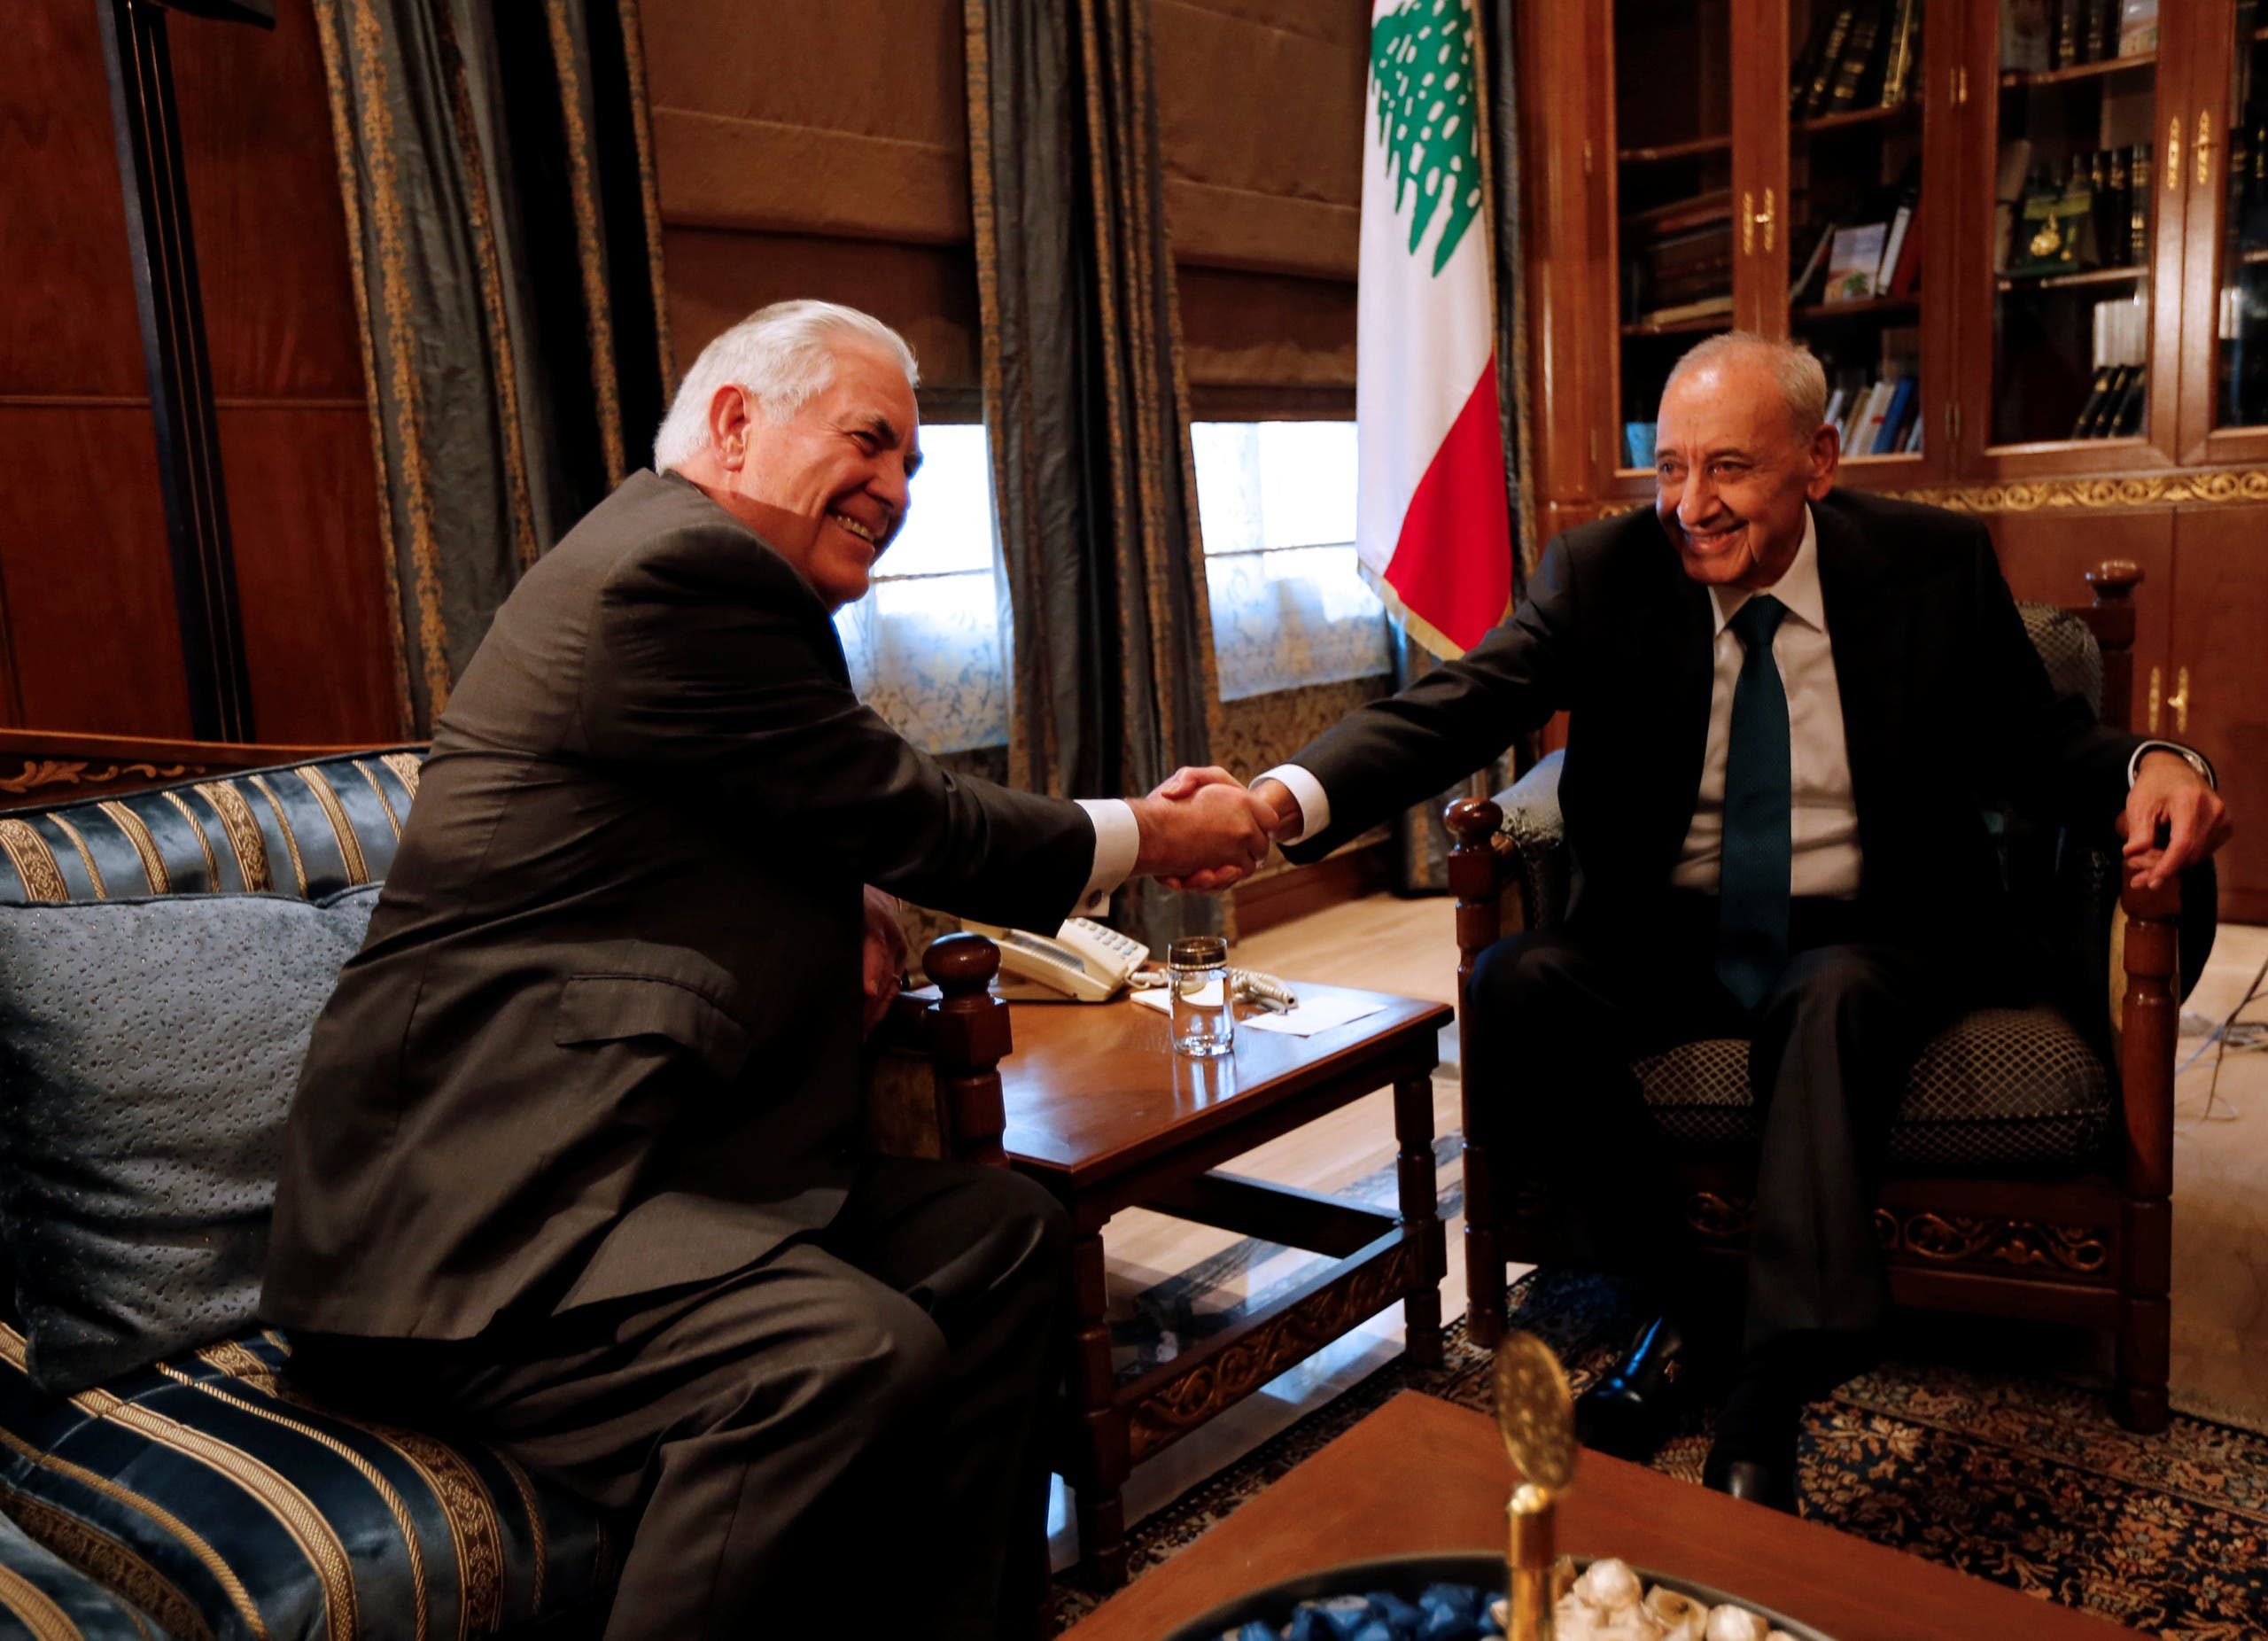 Lebanese Parliament Speaker Nabih Berri shakes hands with U.S. Secretary of State Rex Tillerson in Beirut, Lebanon February 15, 2018. REUTERS/Jamal Saidi